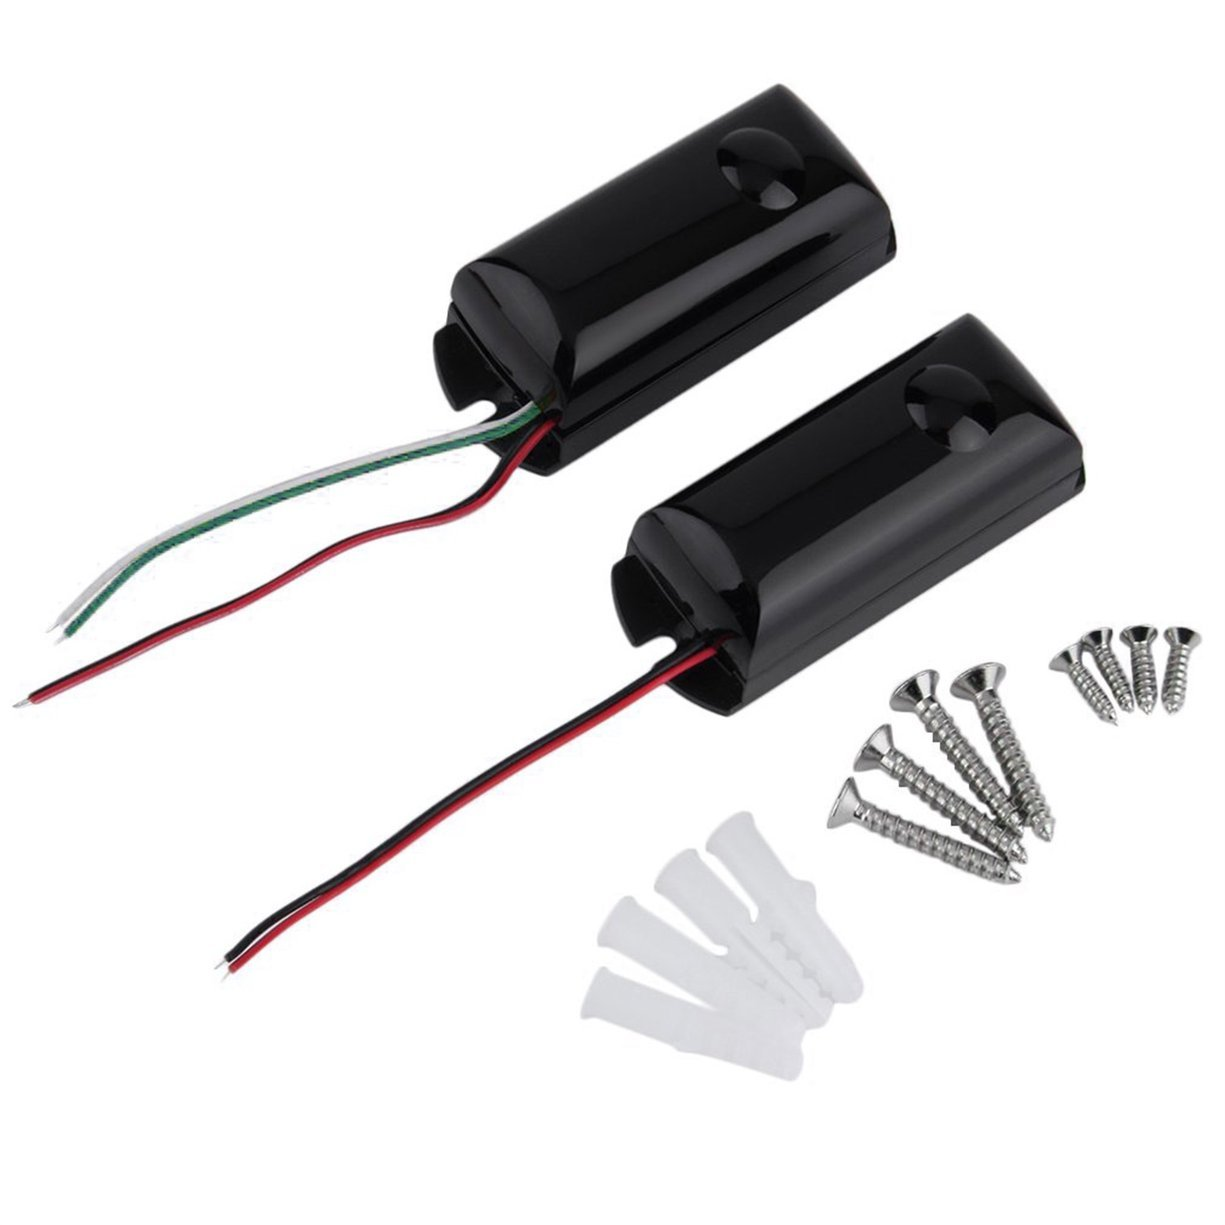 Detectoy 1Pcs Wired Single Beams Infrared IR Barrier Detector New Motion Sensor Outdoor For Home Safety Tool Accessories